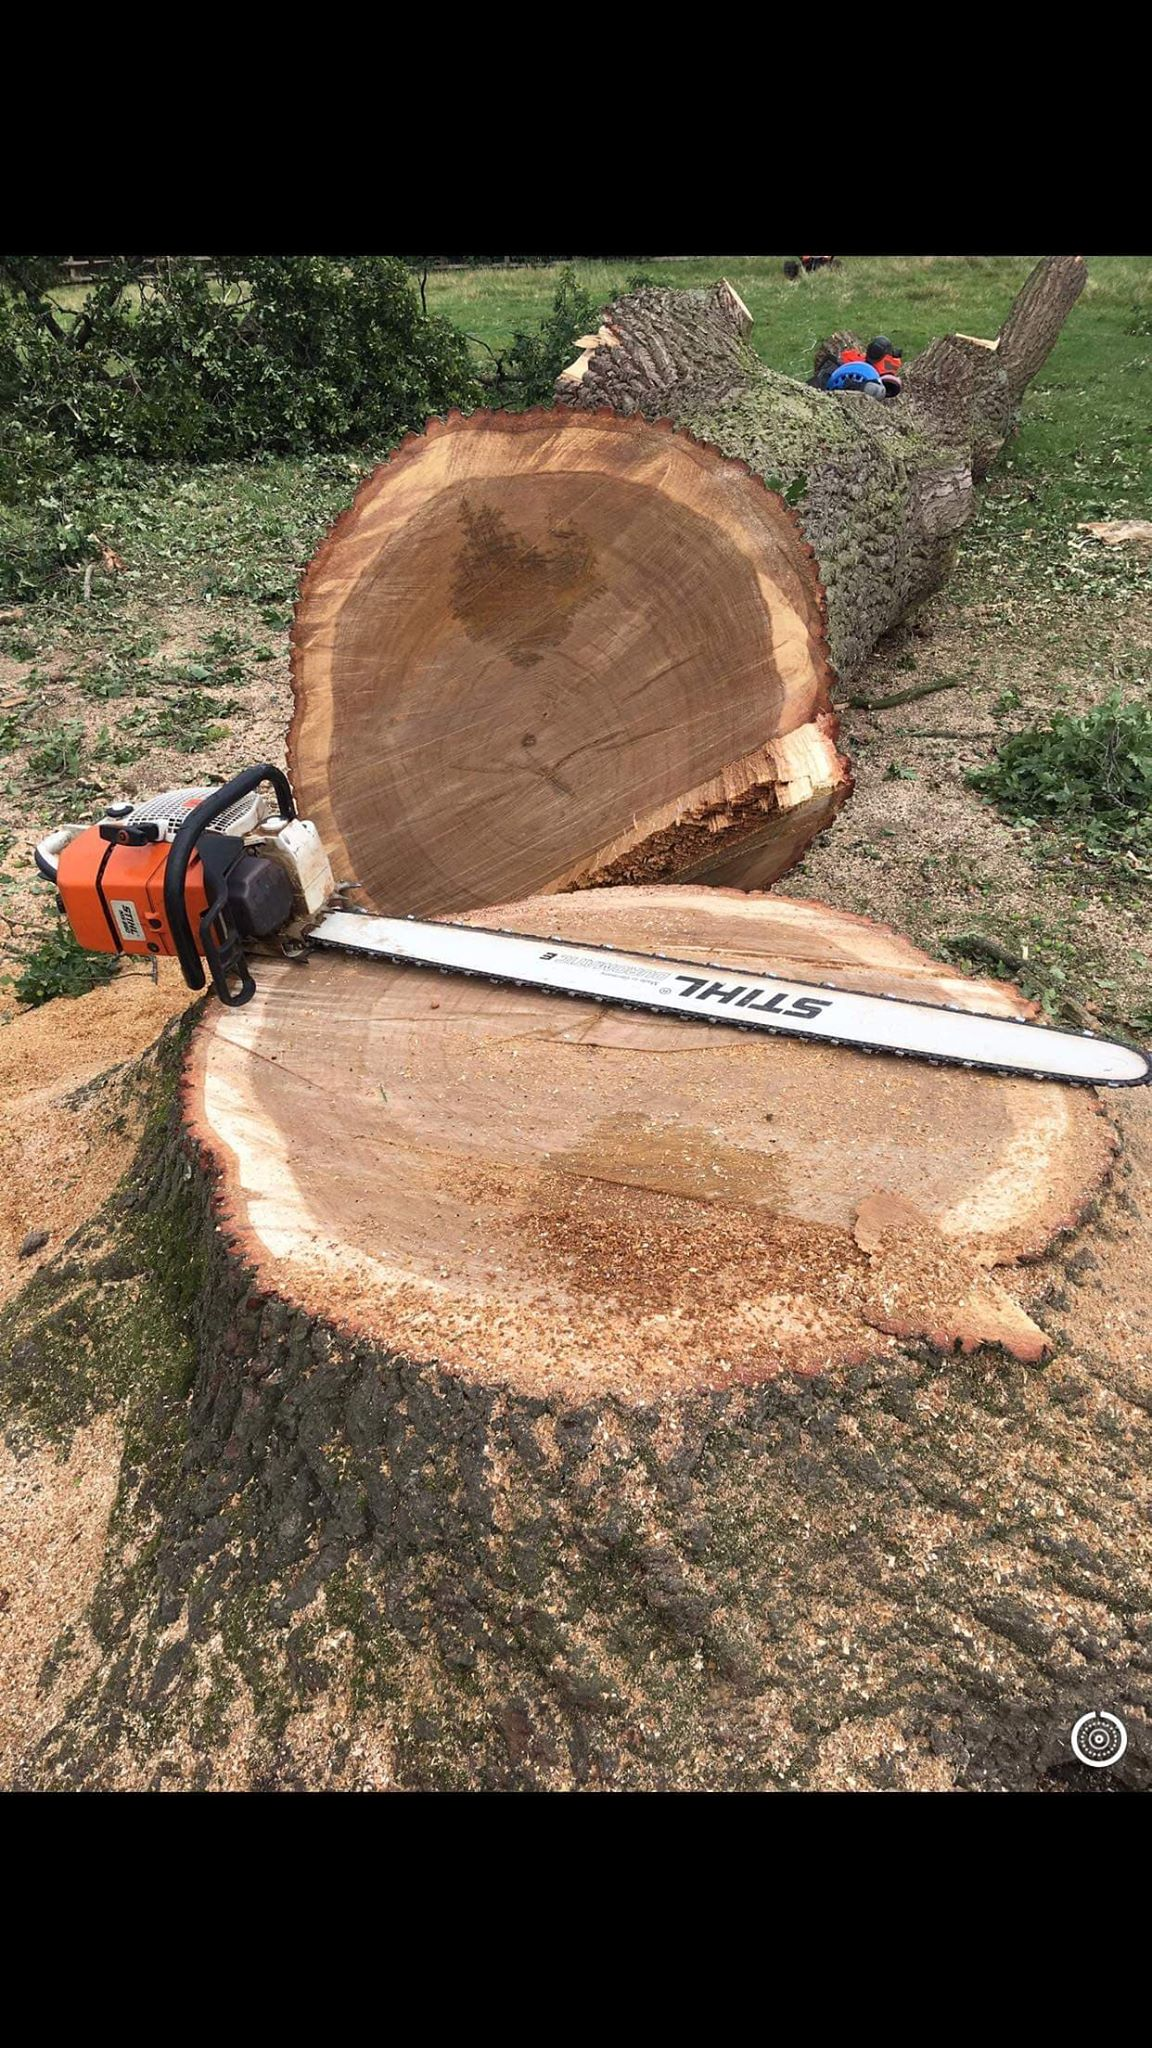 felled oak tree wth a stihl chainsaw